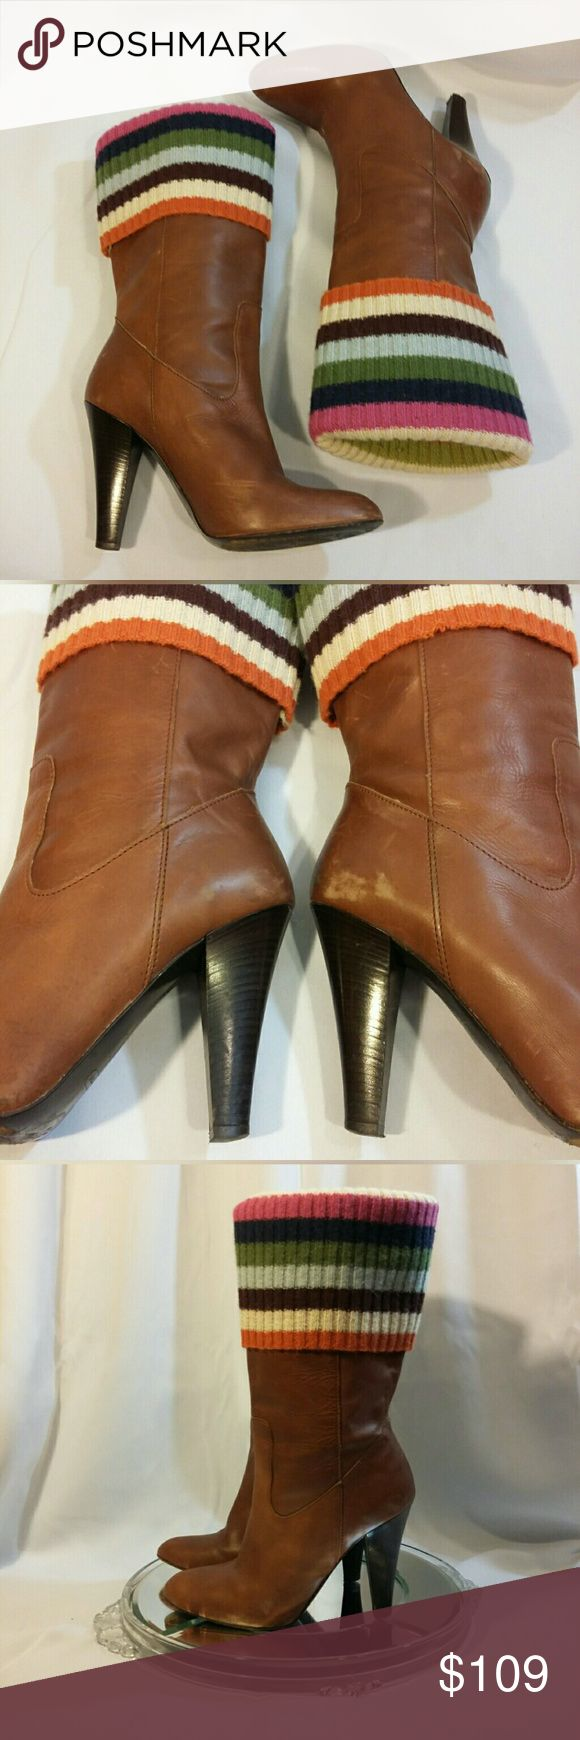 "Coach Brown Leather Boots w/Multi Sock Sz 7 Full grain leather boots from Coach with warm and fun multi color ""sock"" that can be worn two ways. Some visible wear, but the boots are still structurally intact and beautiful. Coach Shoes Heeled Boots"